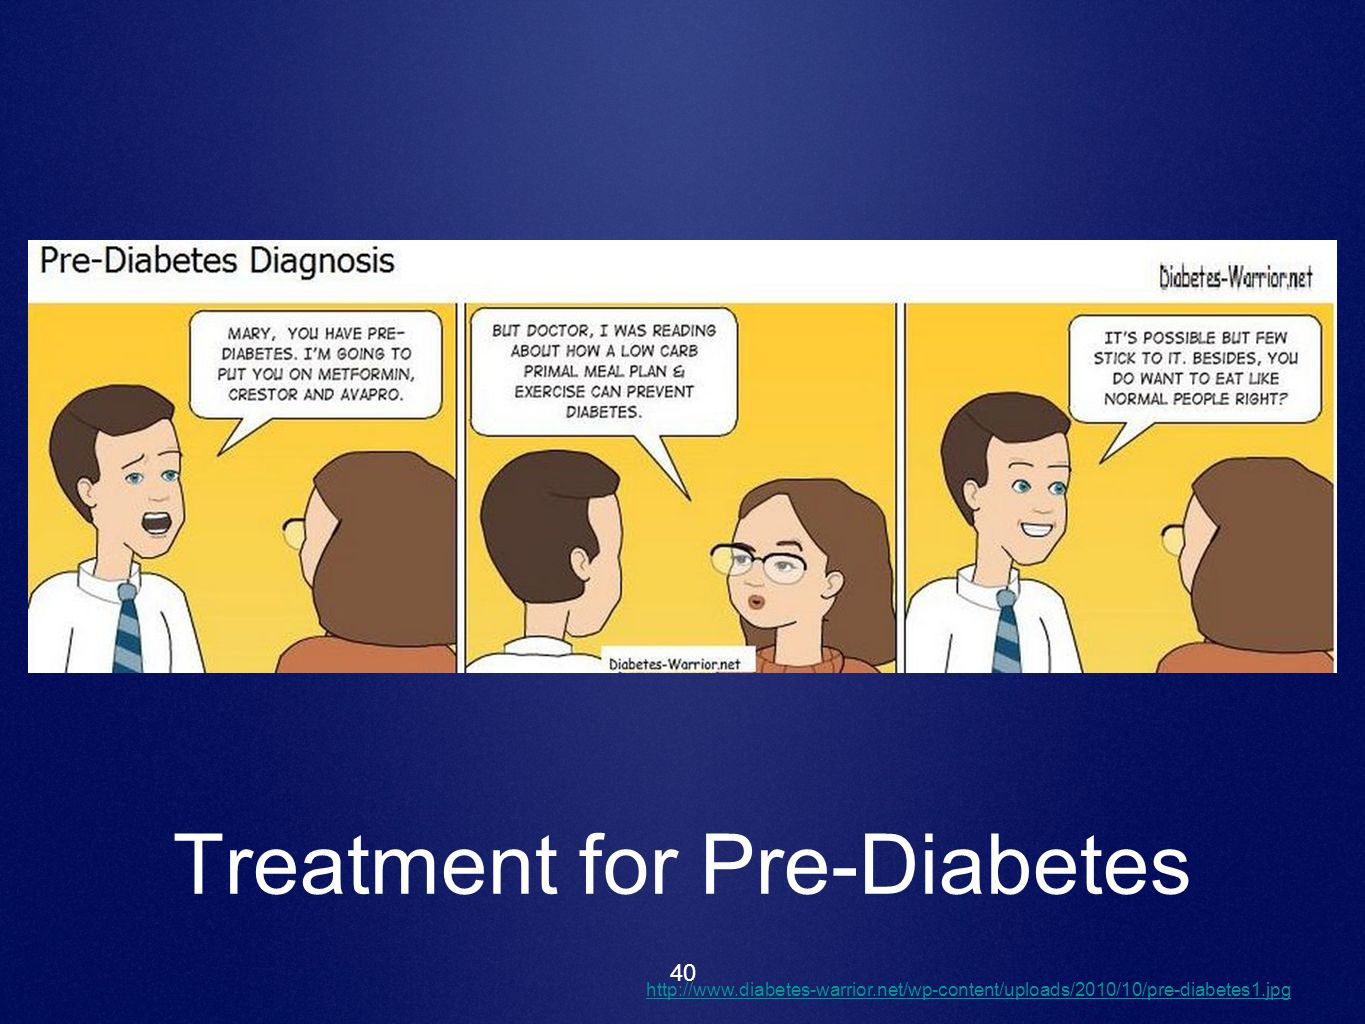 40 Treatment for Pre-Diabetes http://www.diabetes-warrior.net/wp-content/uploads/2010/10/pre-diabetes1.jpg